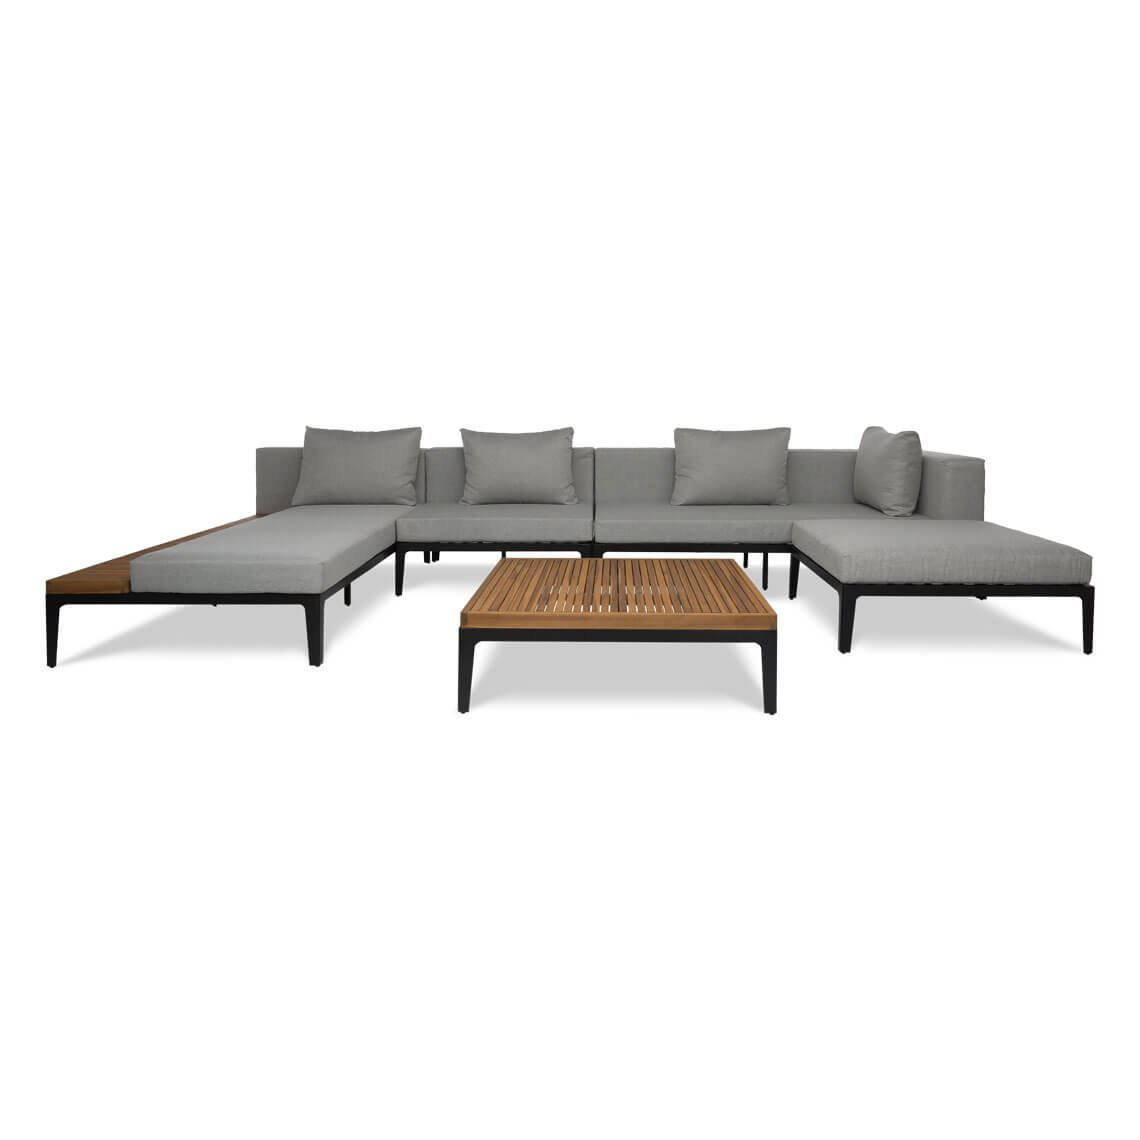 Freedom Kent 5 Piece Outdoor Lounge Set With Right Arm Facing Modular Sofa Size W 400cm X D 220cm X H 80cm Outdoor Lounge Set Modular Sofa All Modern Furniture